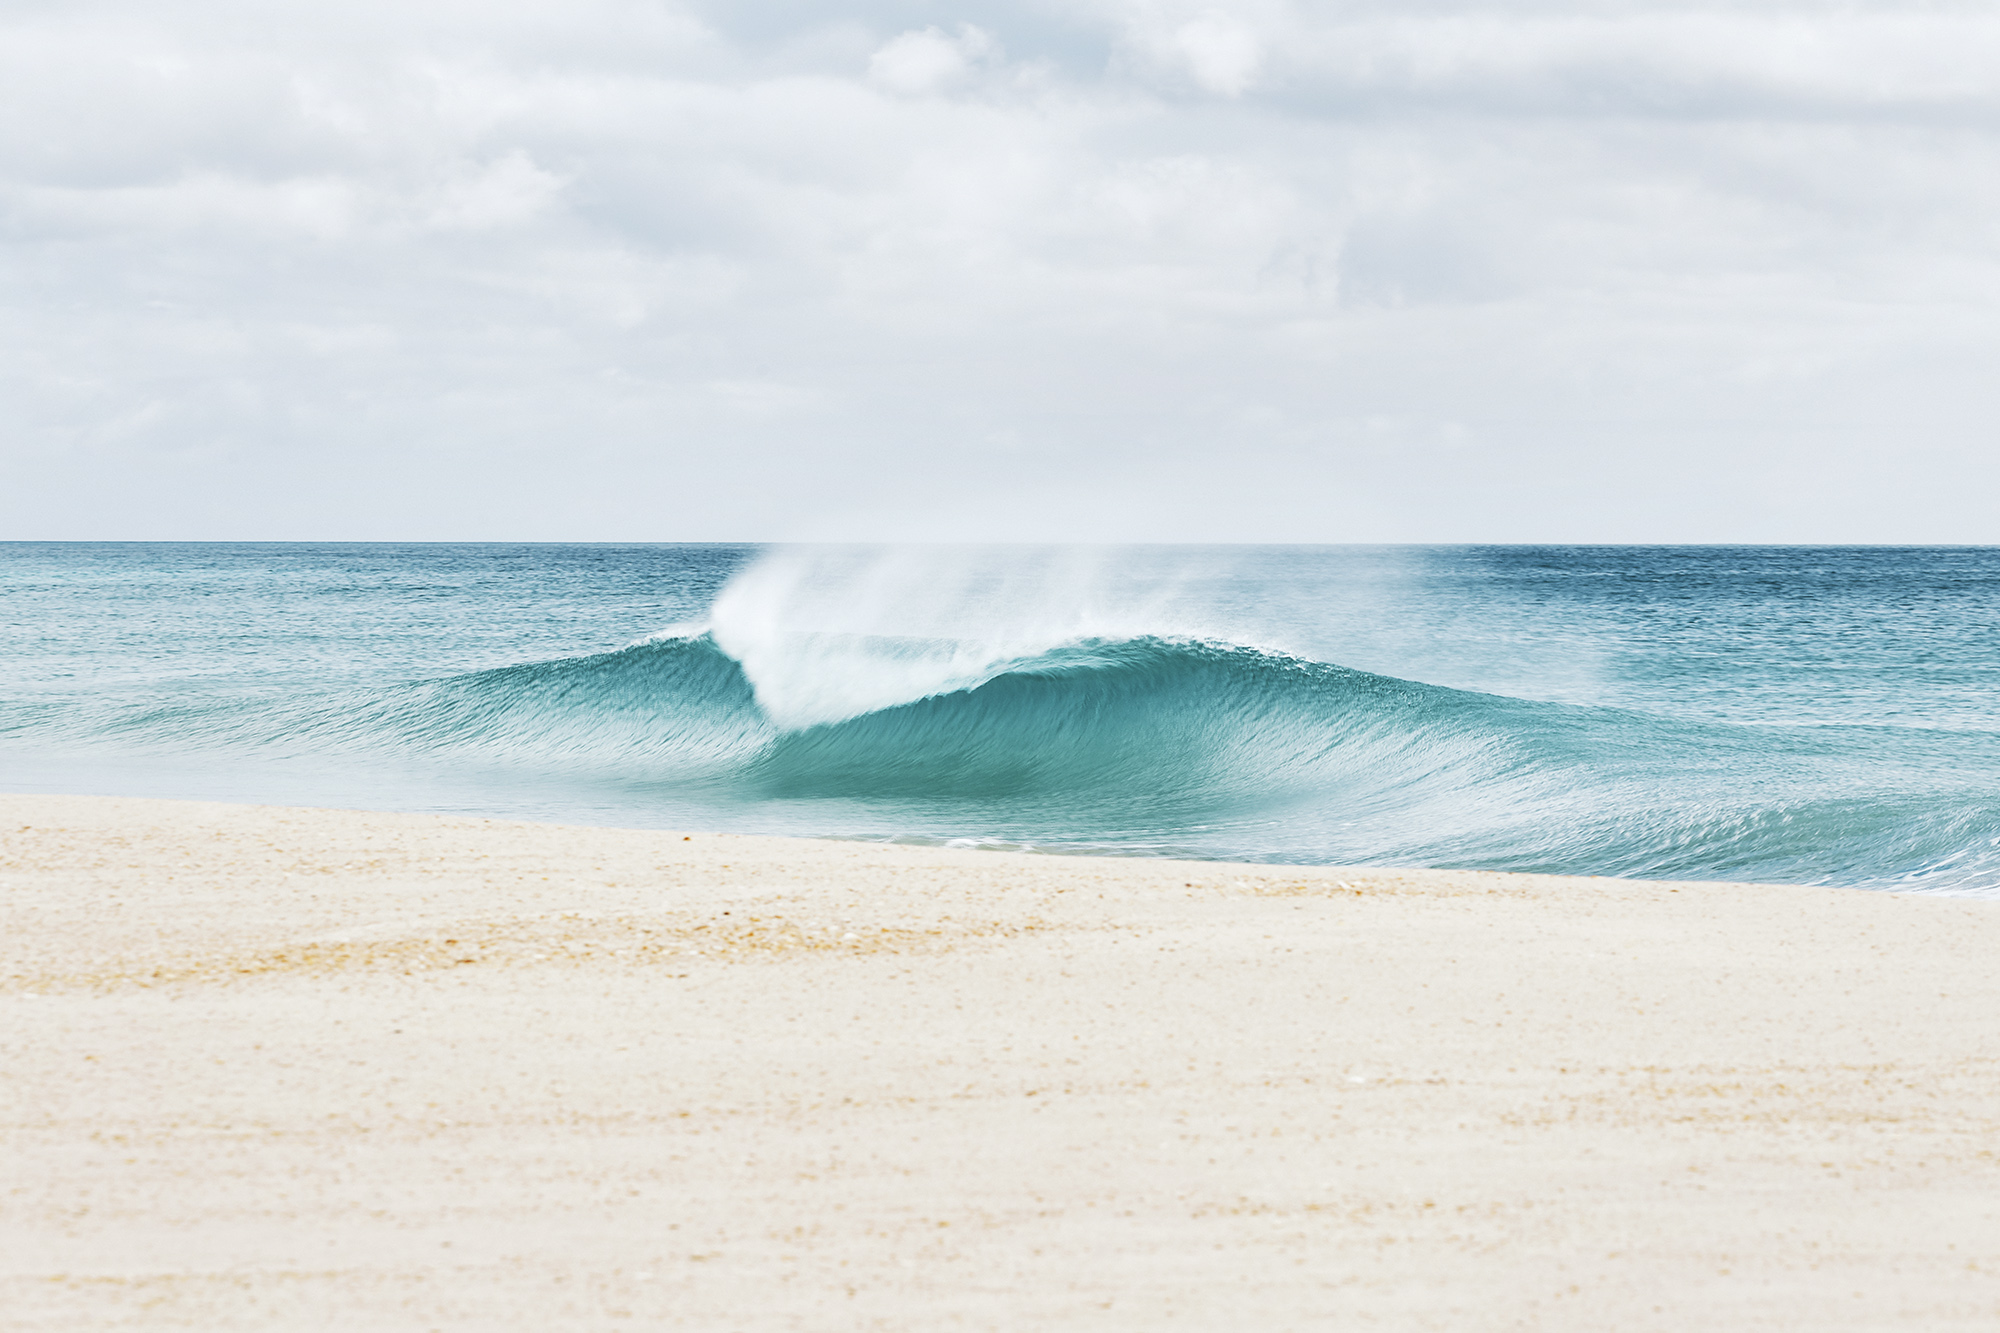 Martha Lavinia is one of the most beautifully photogenic sand bank waves on the planet.